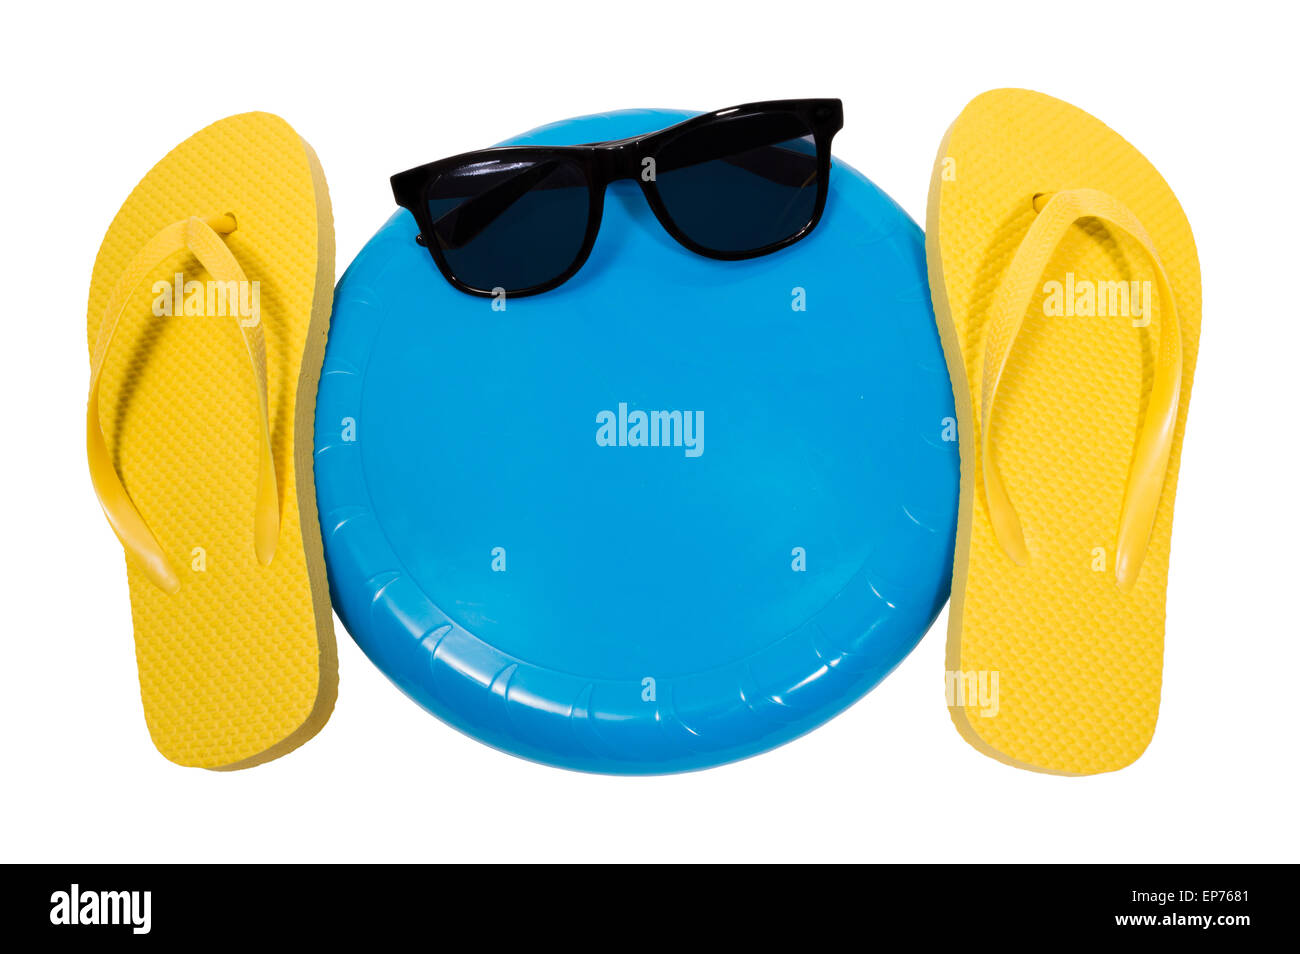 Flip Flops And Frisbee Summer Fun Outdoors - Stock Image